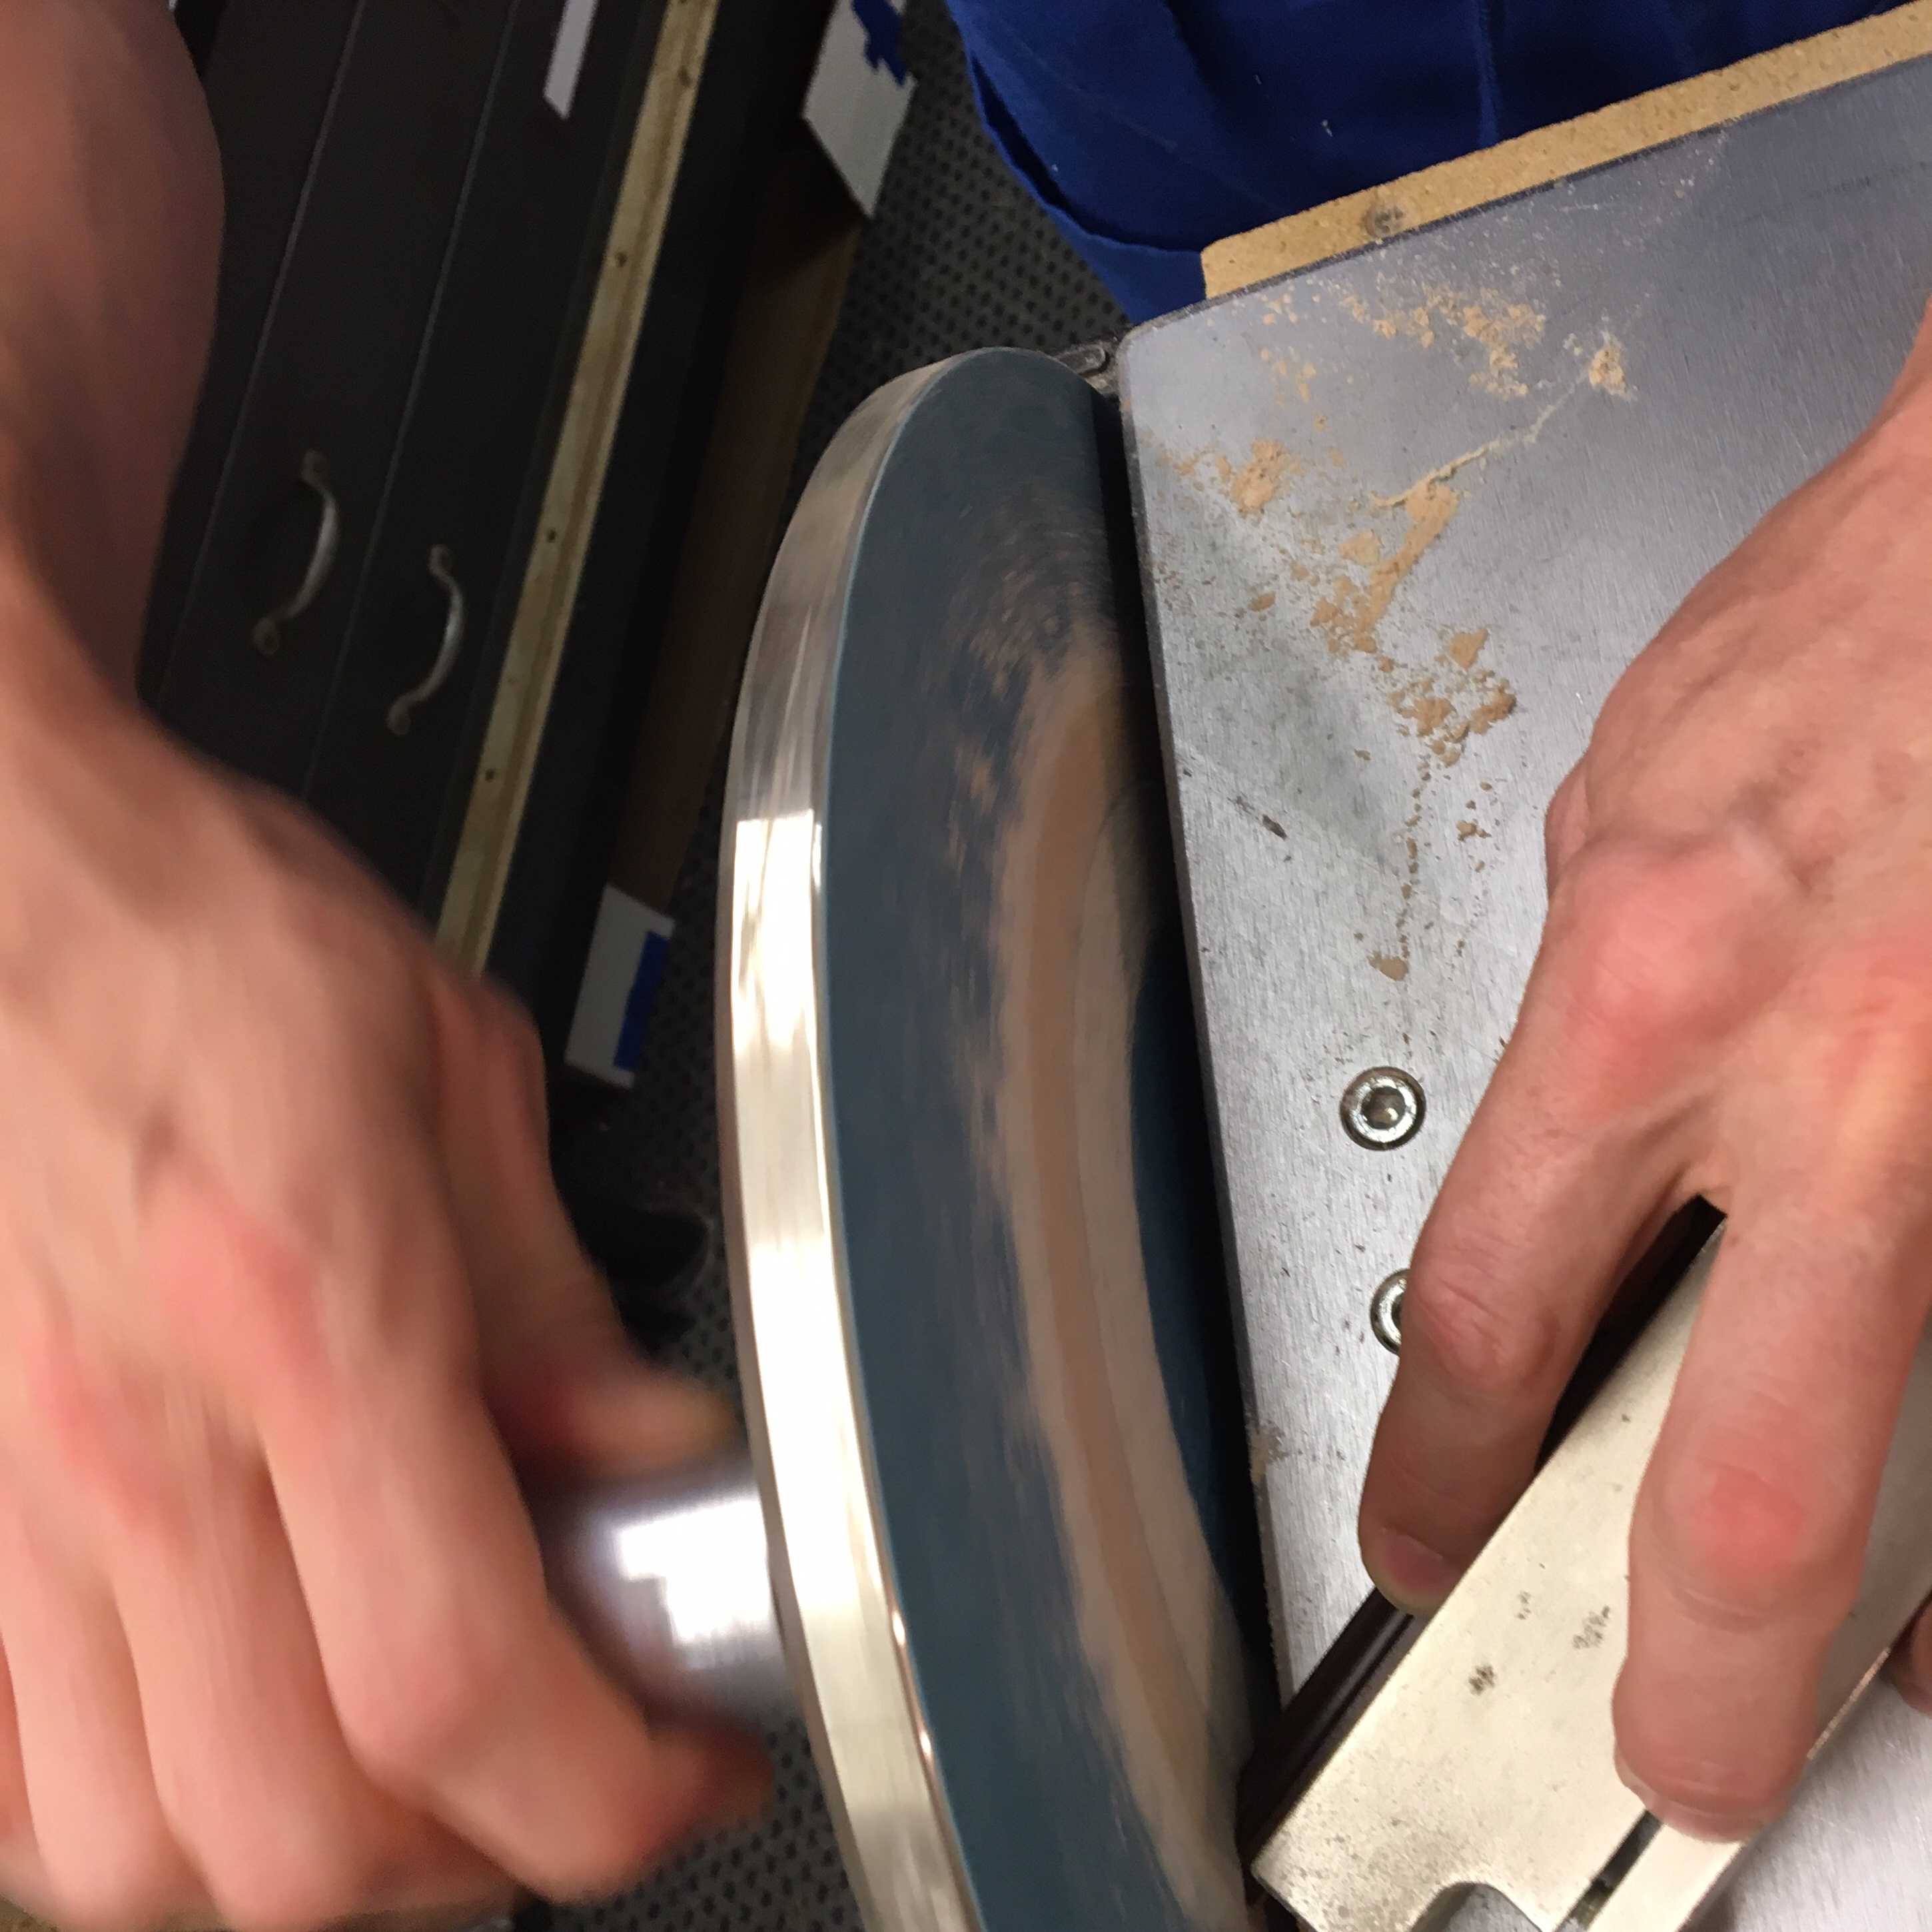 Precision = Perfection! Matt sands micrometers off a fillet until it fits flawlessly. Visit us In Keswick Village - just outside of Philadelphia, PA.